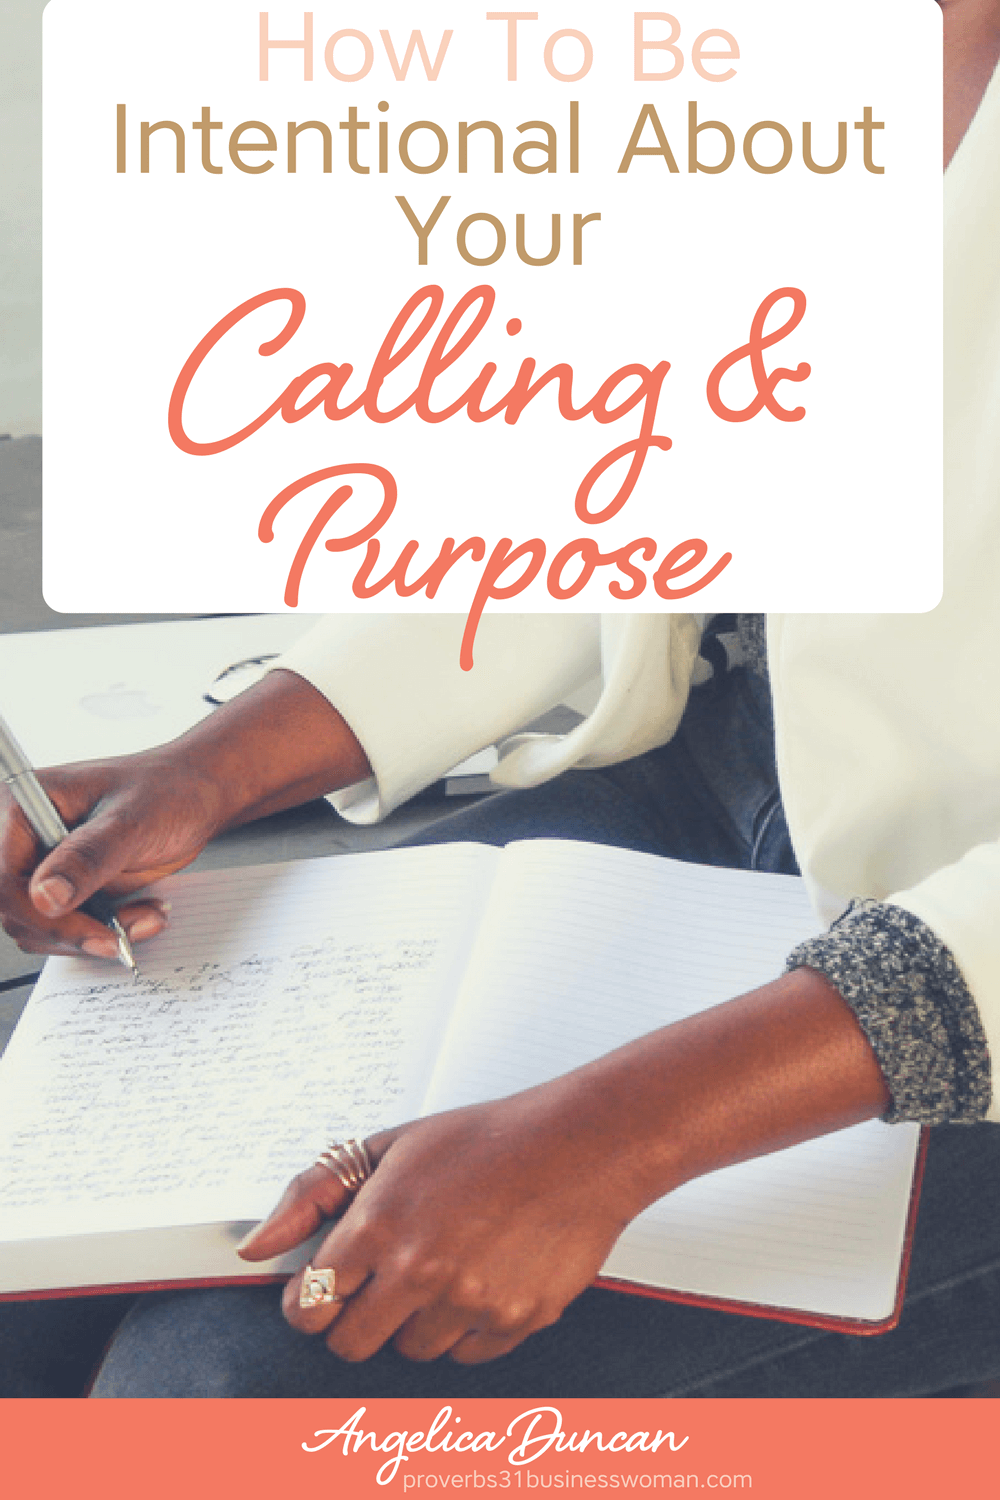 God wants you to be intentional about pursuing your calling and purpose in life! Let me show 5 simple, yet powerful action-steps to make it happen! #calling #purpose #christianwomenleaders #womenleaders #faith #chrisitanblogger #proverbs31woman #proverbs31businesswoman #proverbs31enrepreneur #p31 #silkoversteel #sos #angelicaduncan